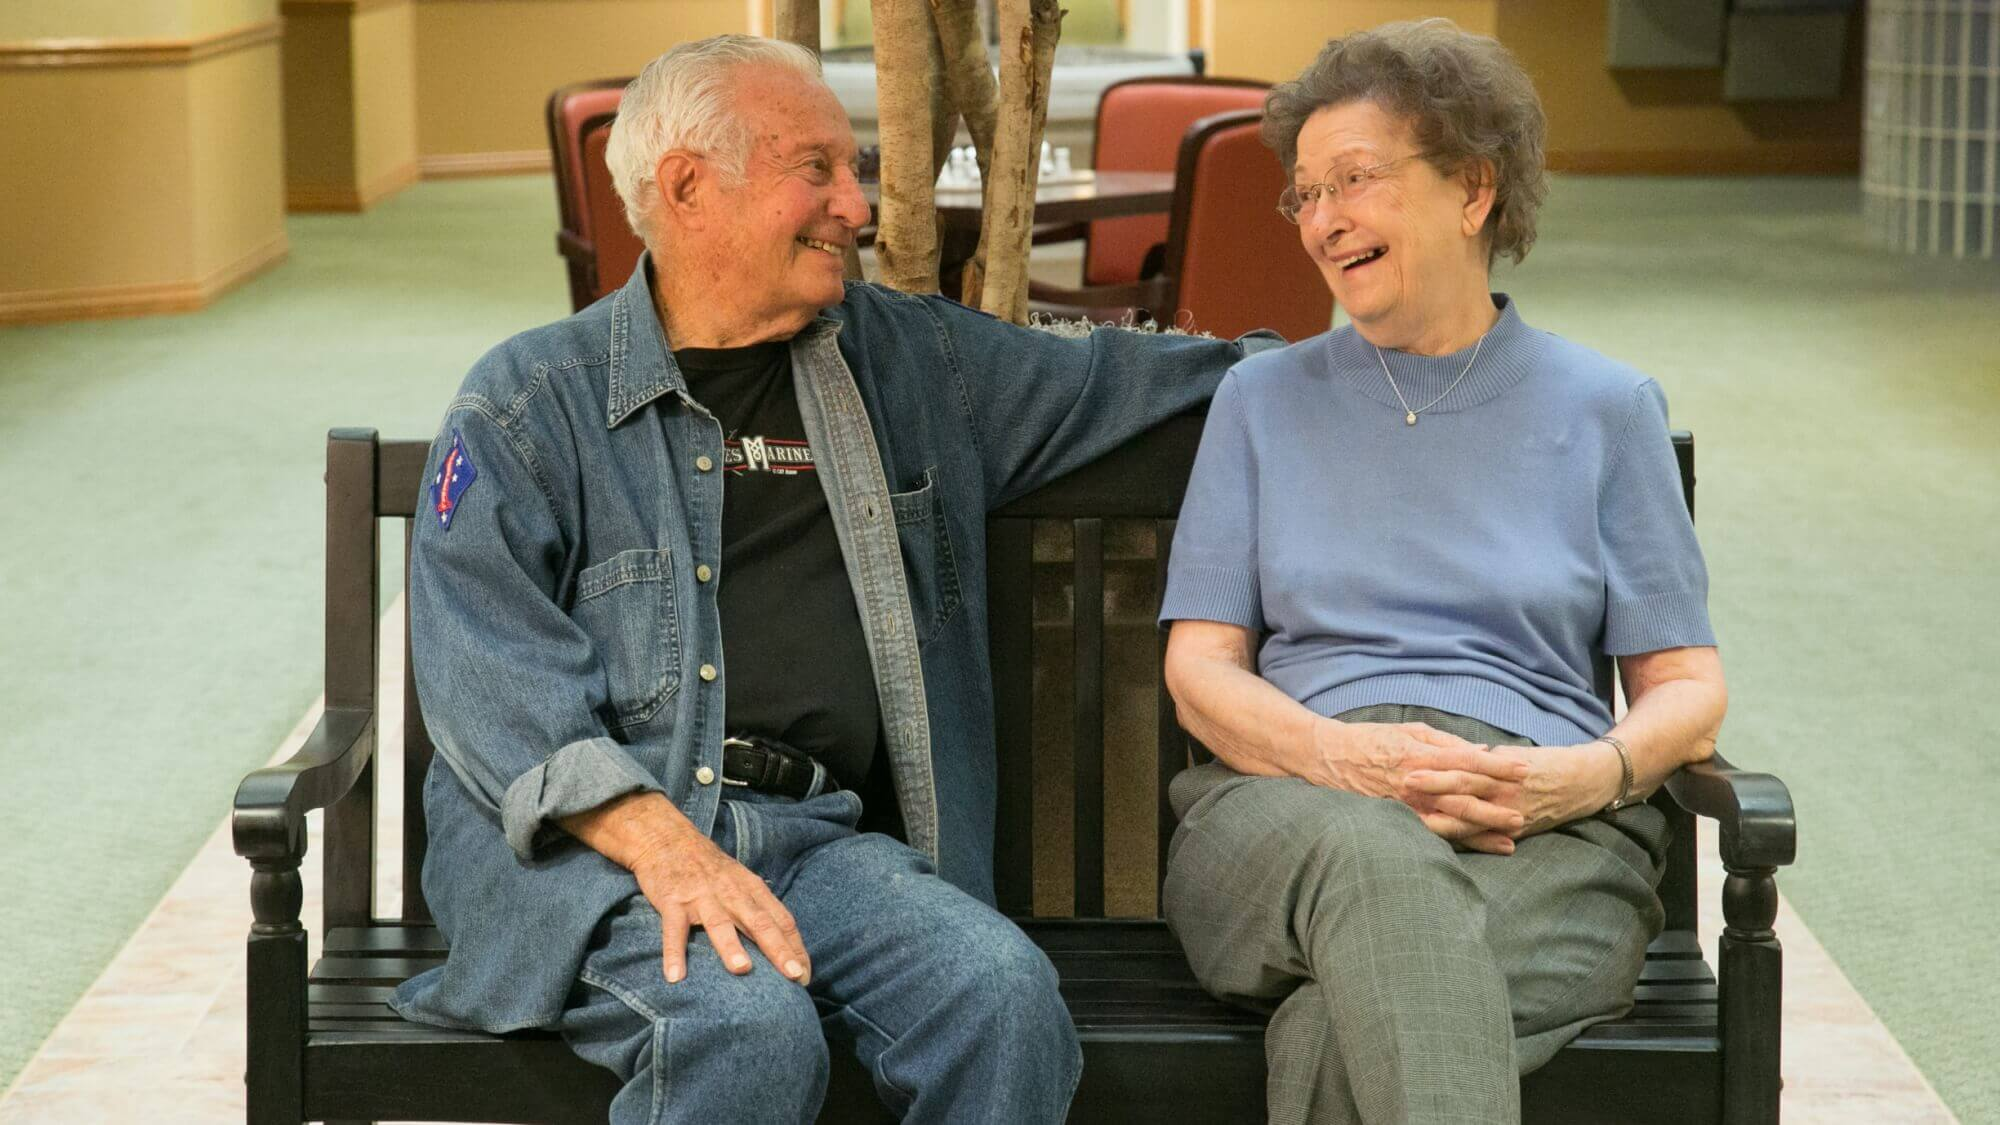 Happy senior couple sitting on a bench, smiling at one another.